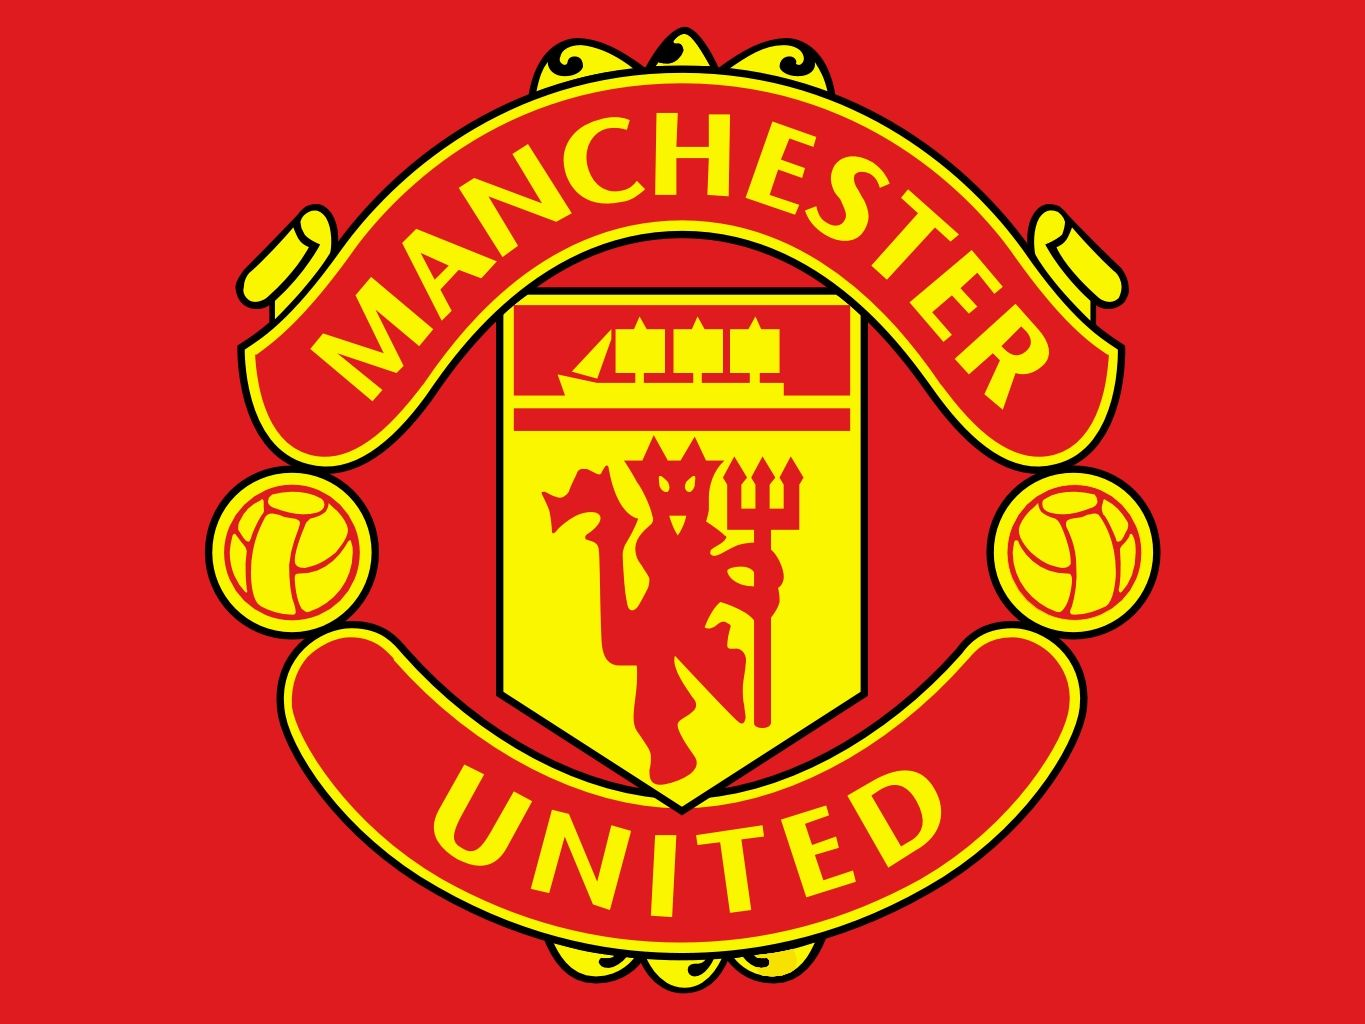 Manchester United Logo - Color of the Manchester United Logo | All logos world | Pinterest ...